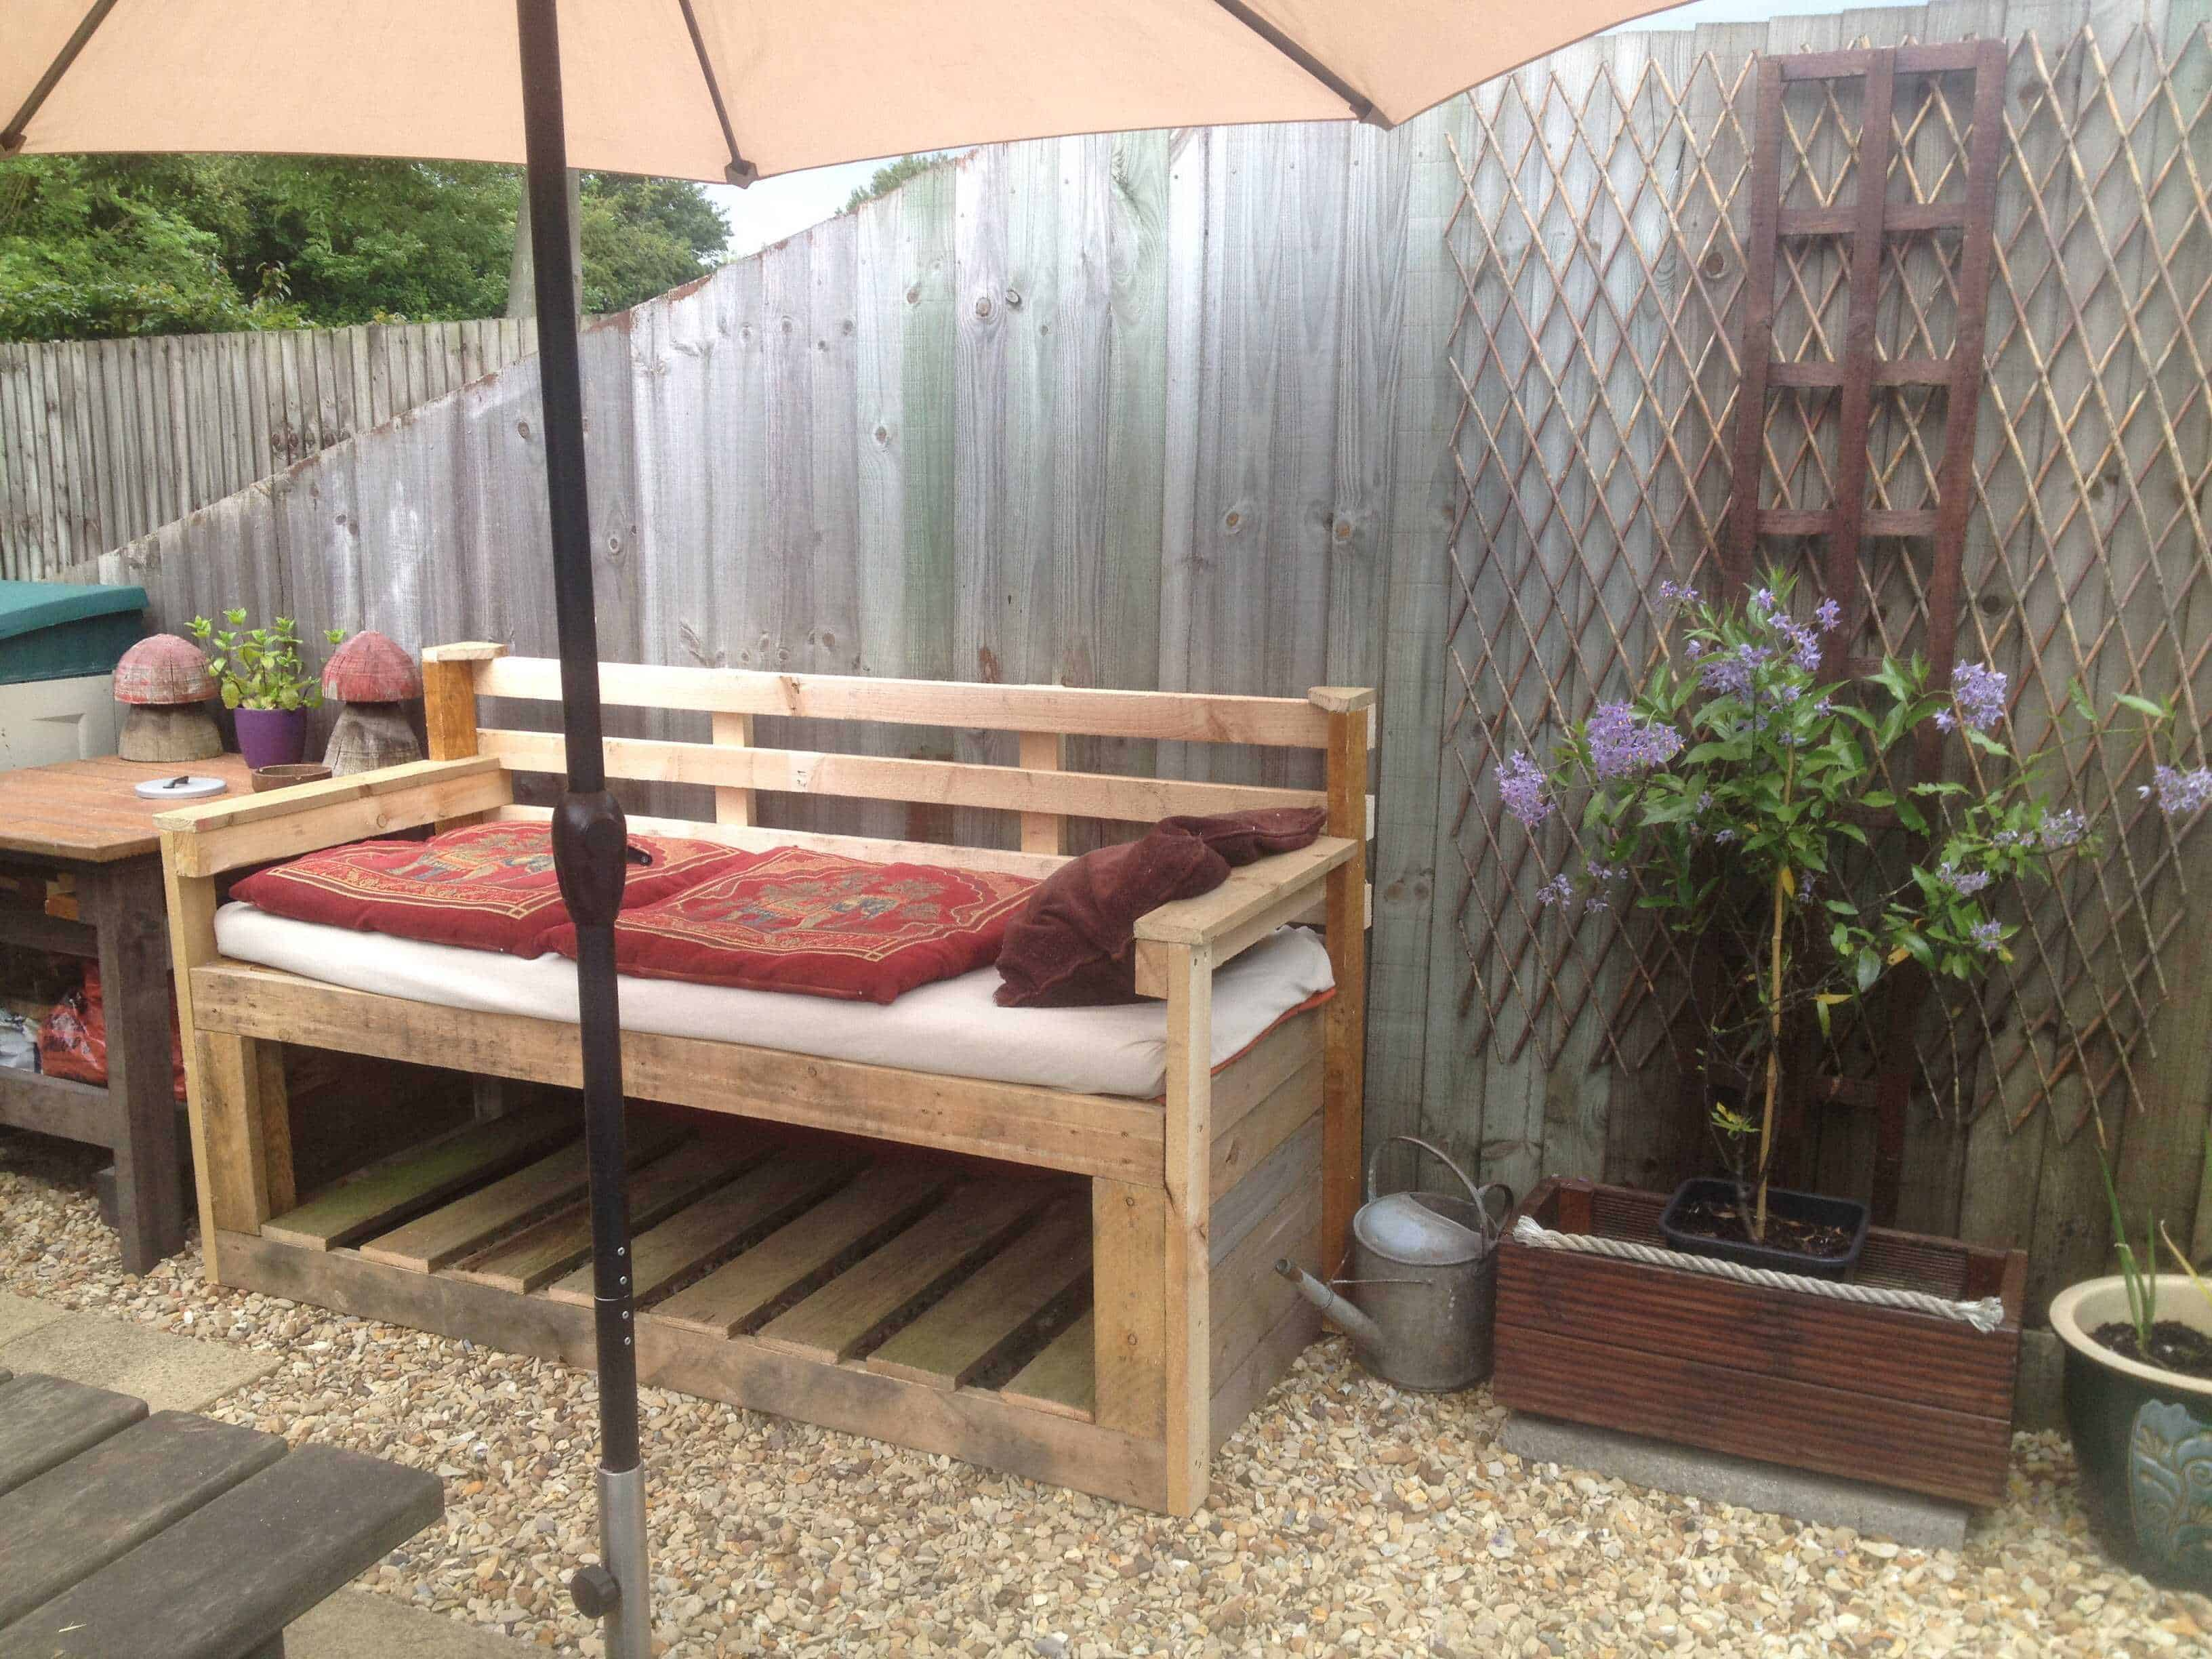 pallet garden sofa 1001 pallets. Black Bedroom Furniture Sets. Home Design Ideas